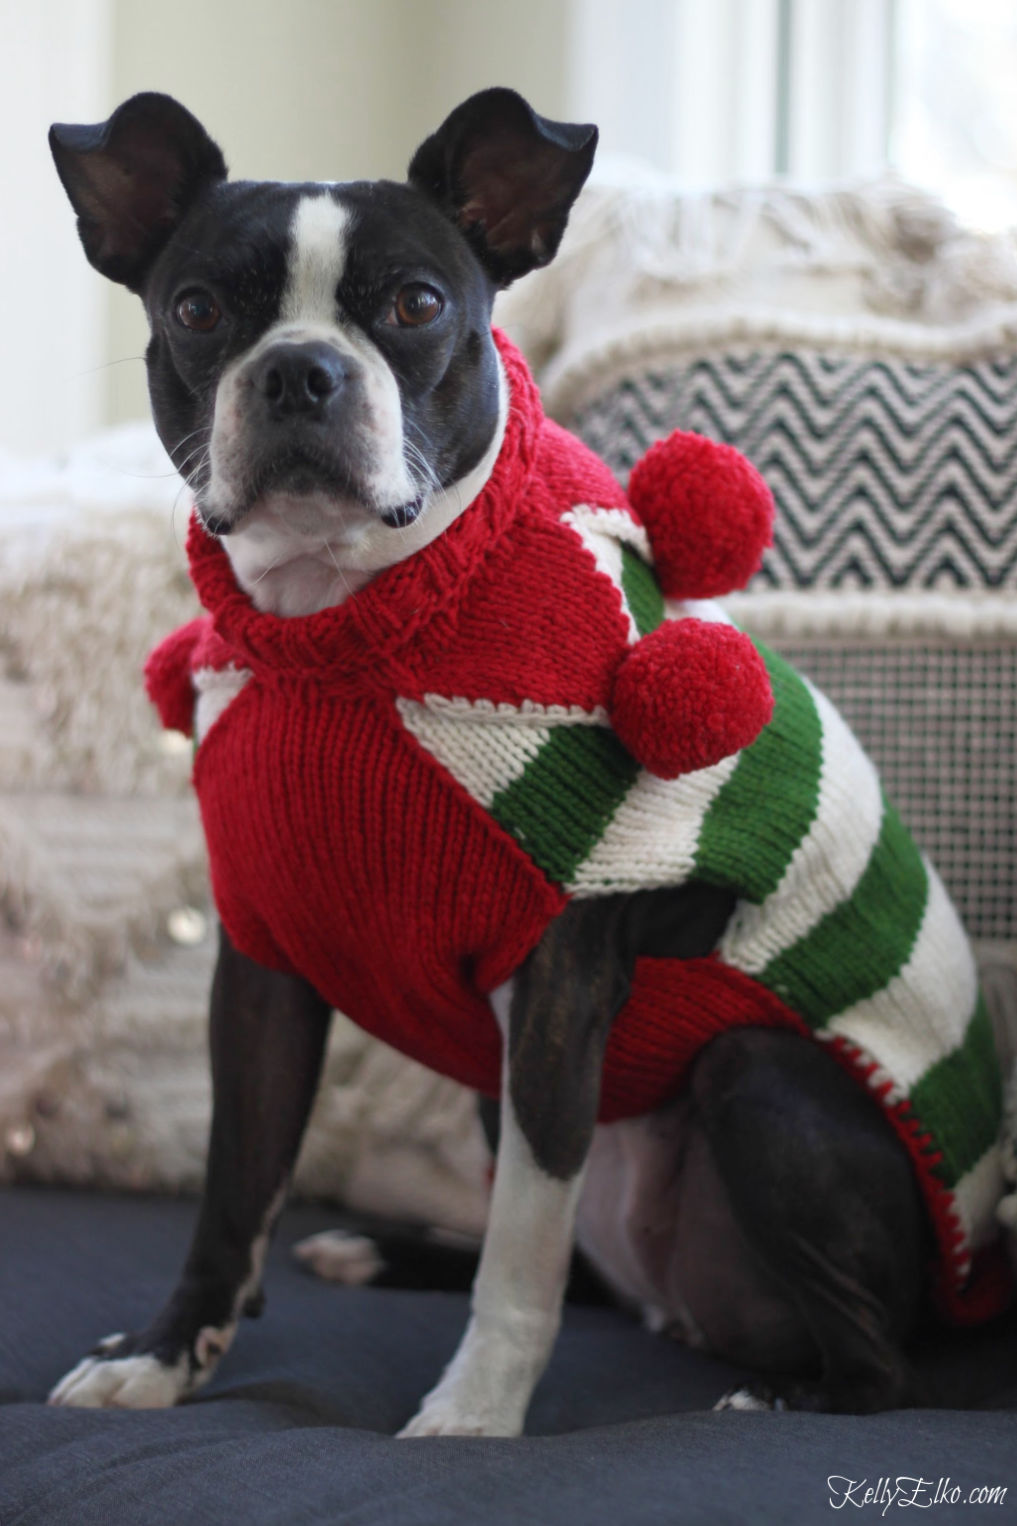 Dogs in Sweaters! Love this elf sweater with big red pom poms on this Boston Terrier kellyelko.com #petclothes #dogclothes #dogsweater #bostonterrier #kellyelko